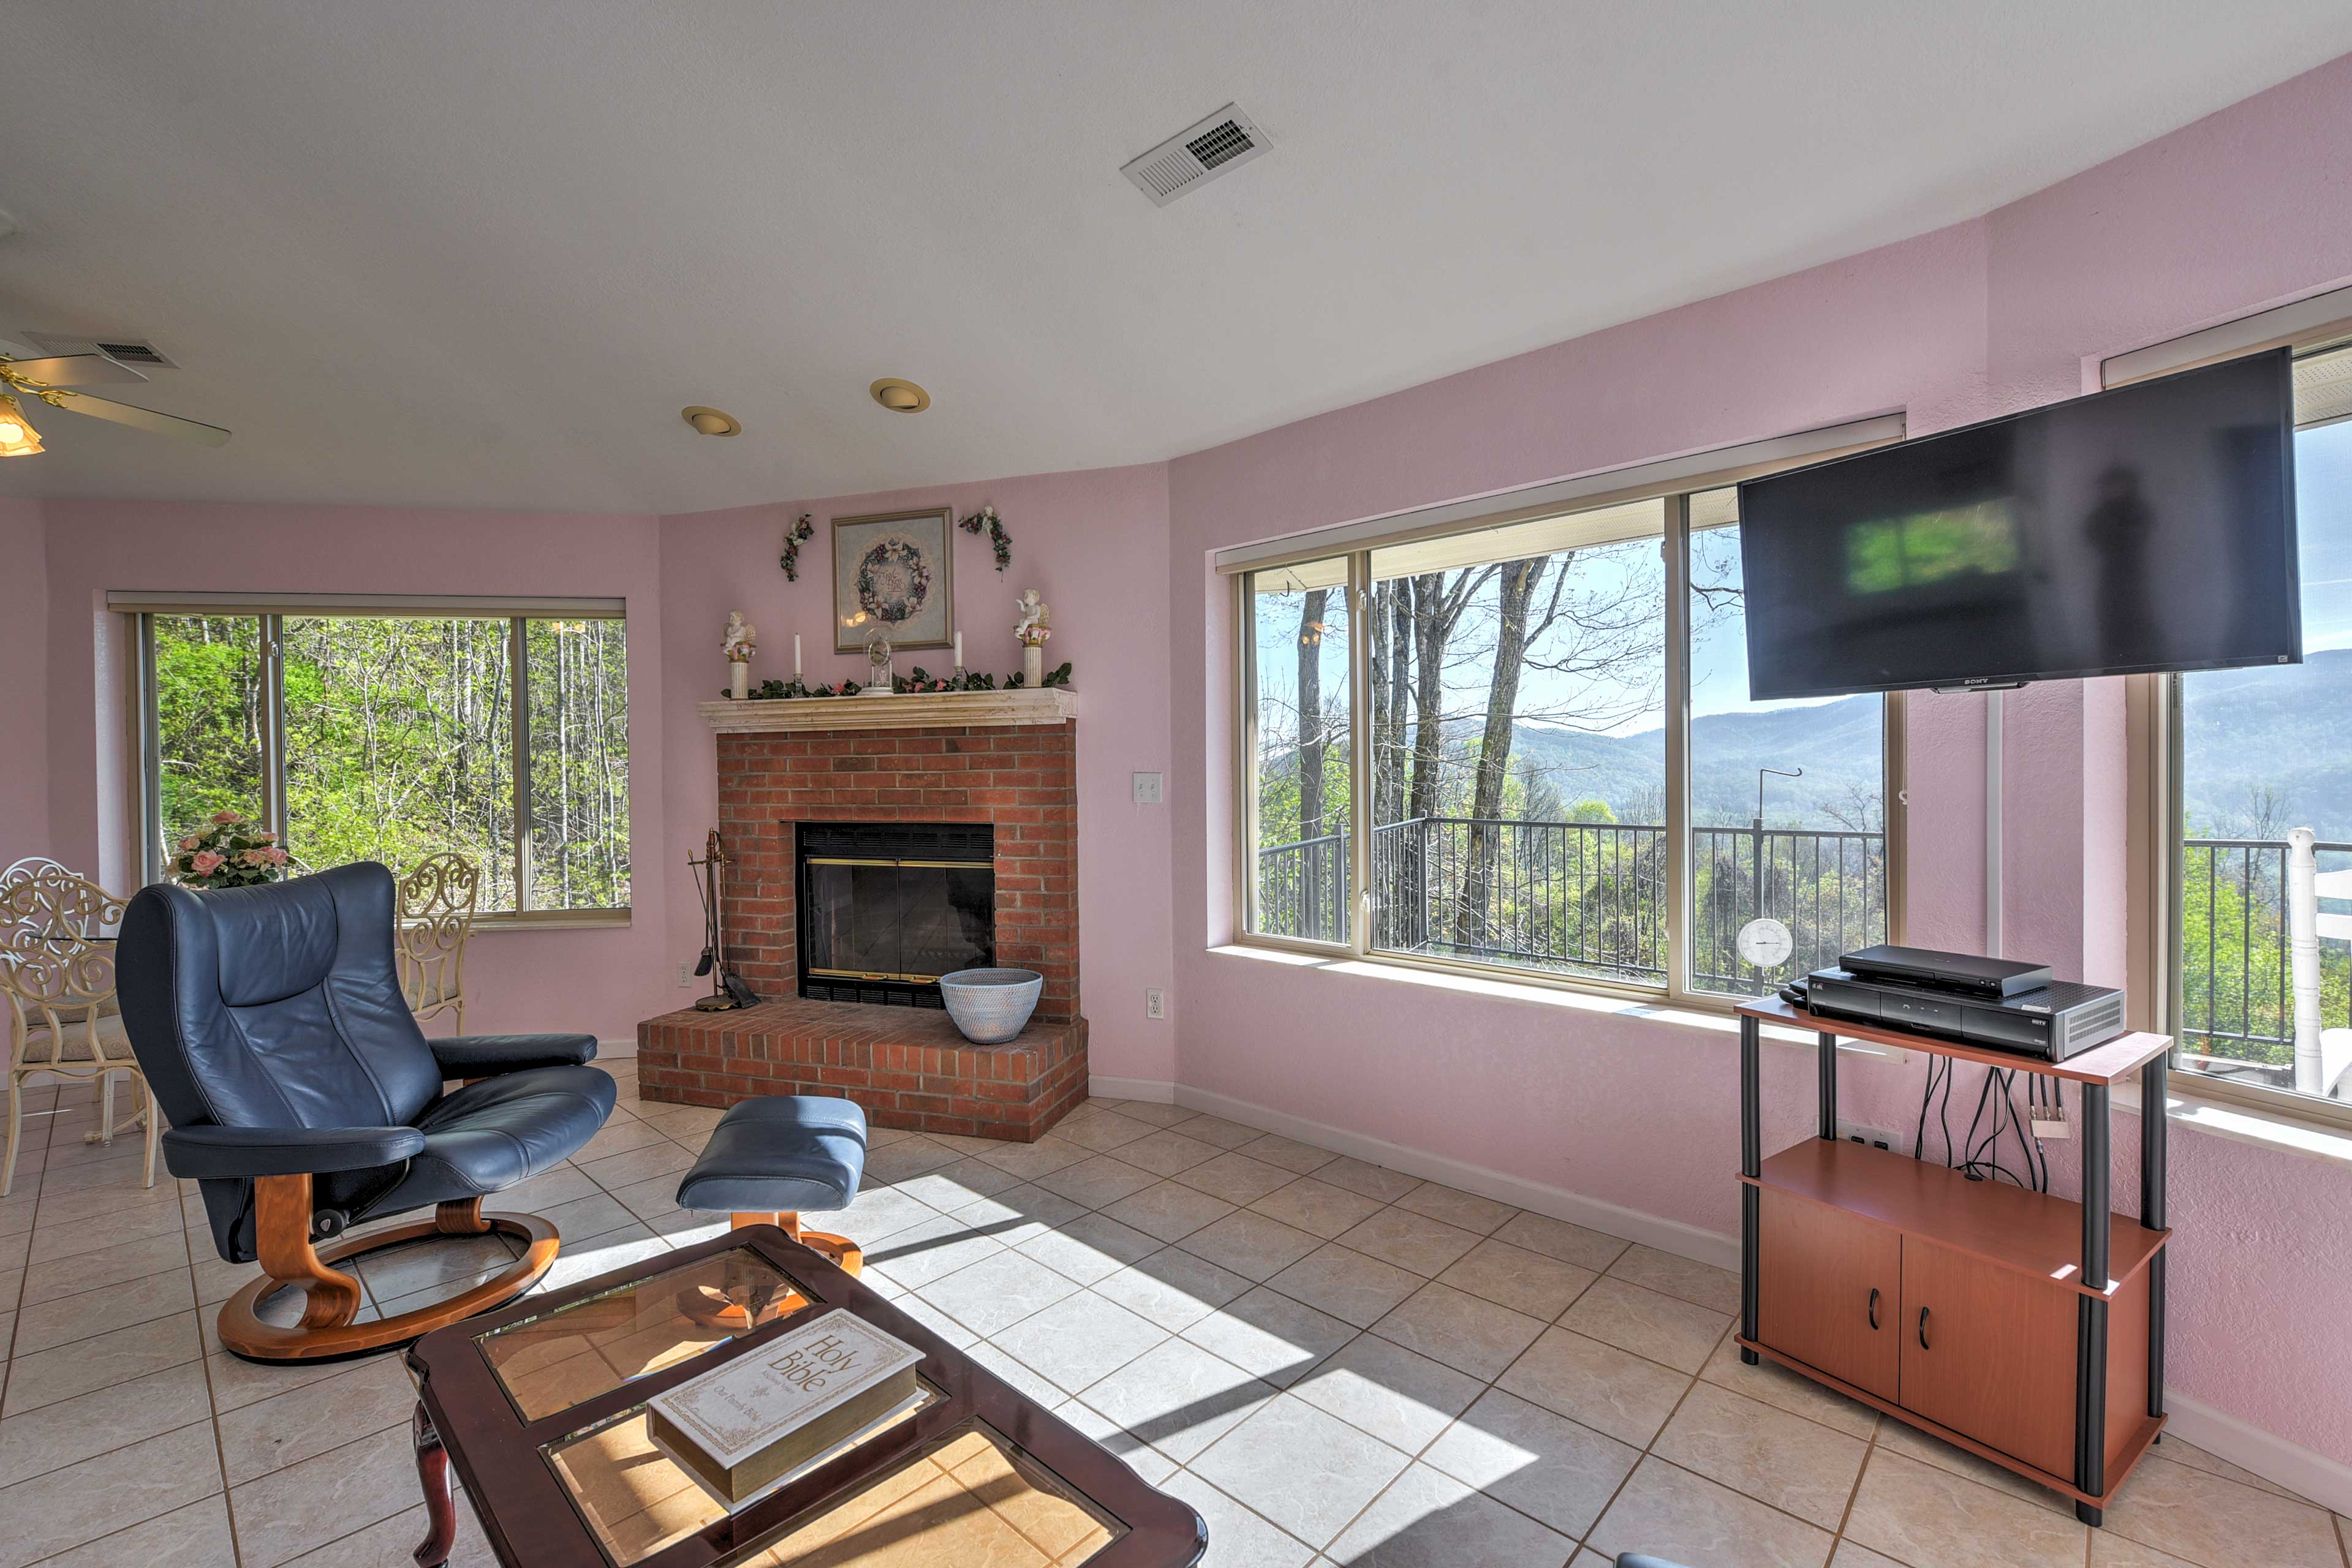 The room features plenty of seating and a red brick wood-burning fireplace.